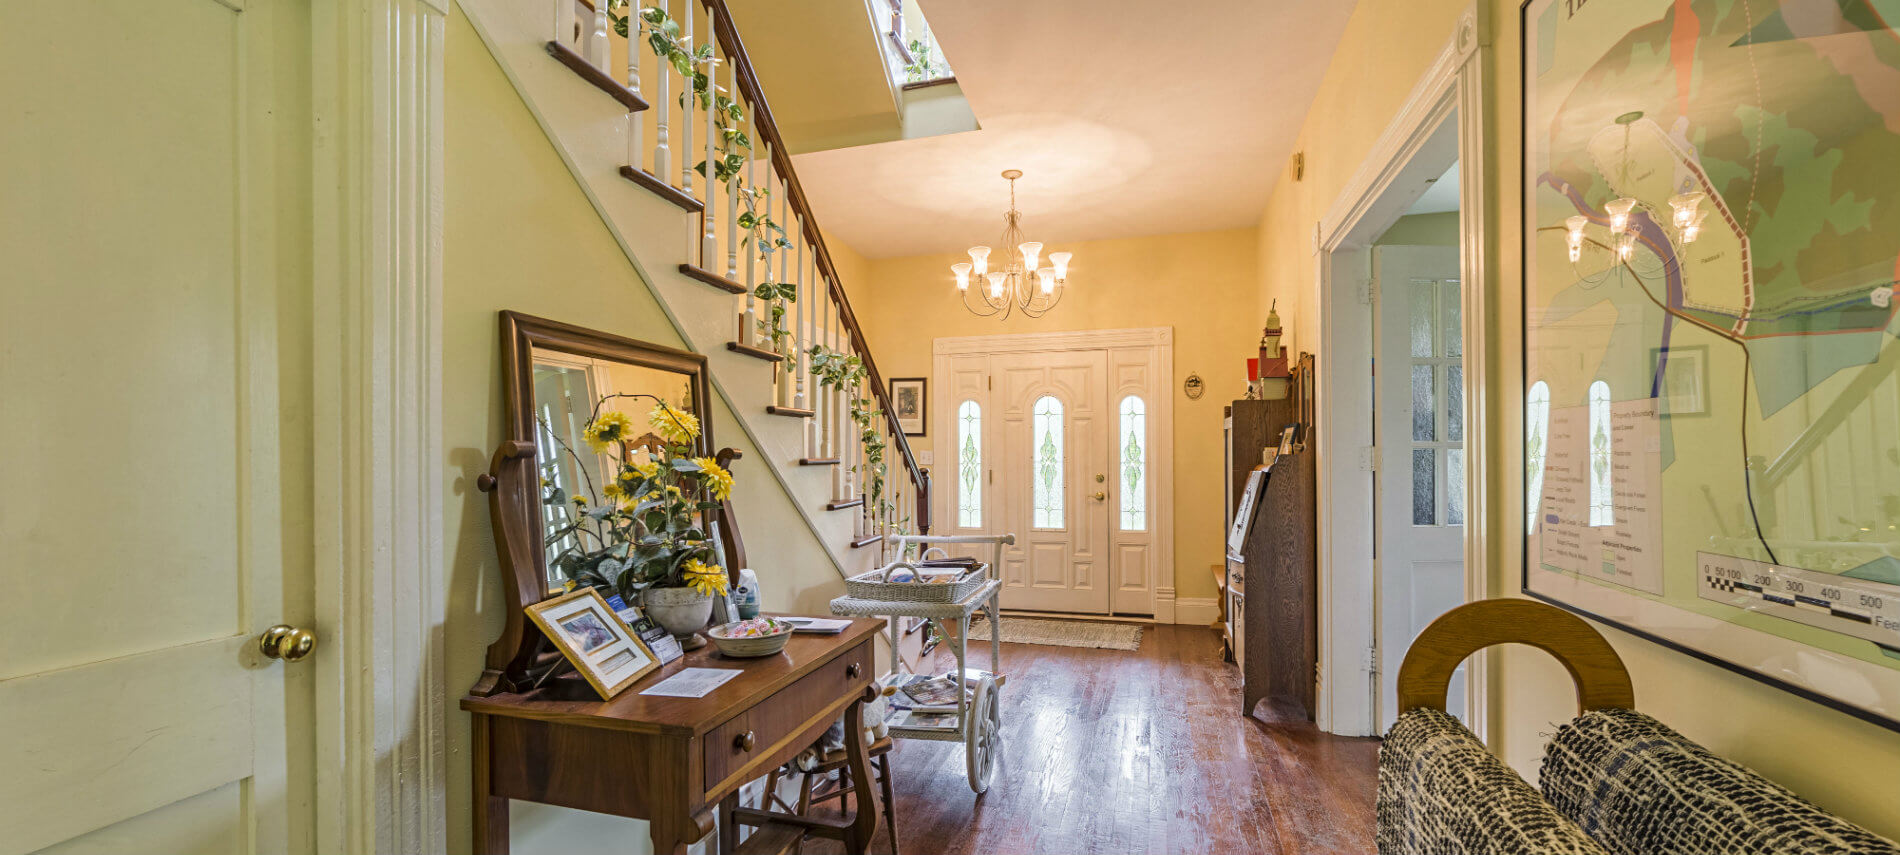 A bright entrance hallway displays blue rag rugs, chandelier and stairway to second floor